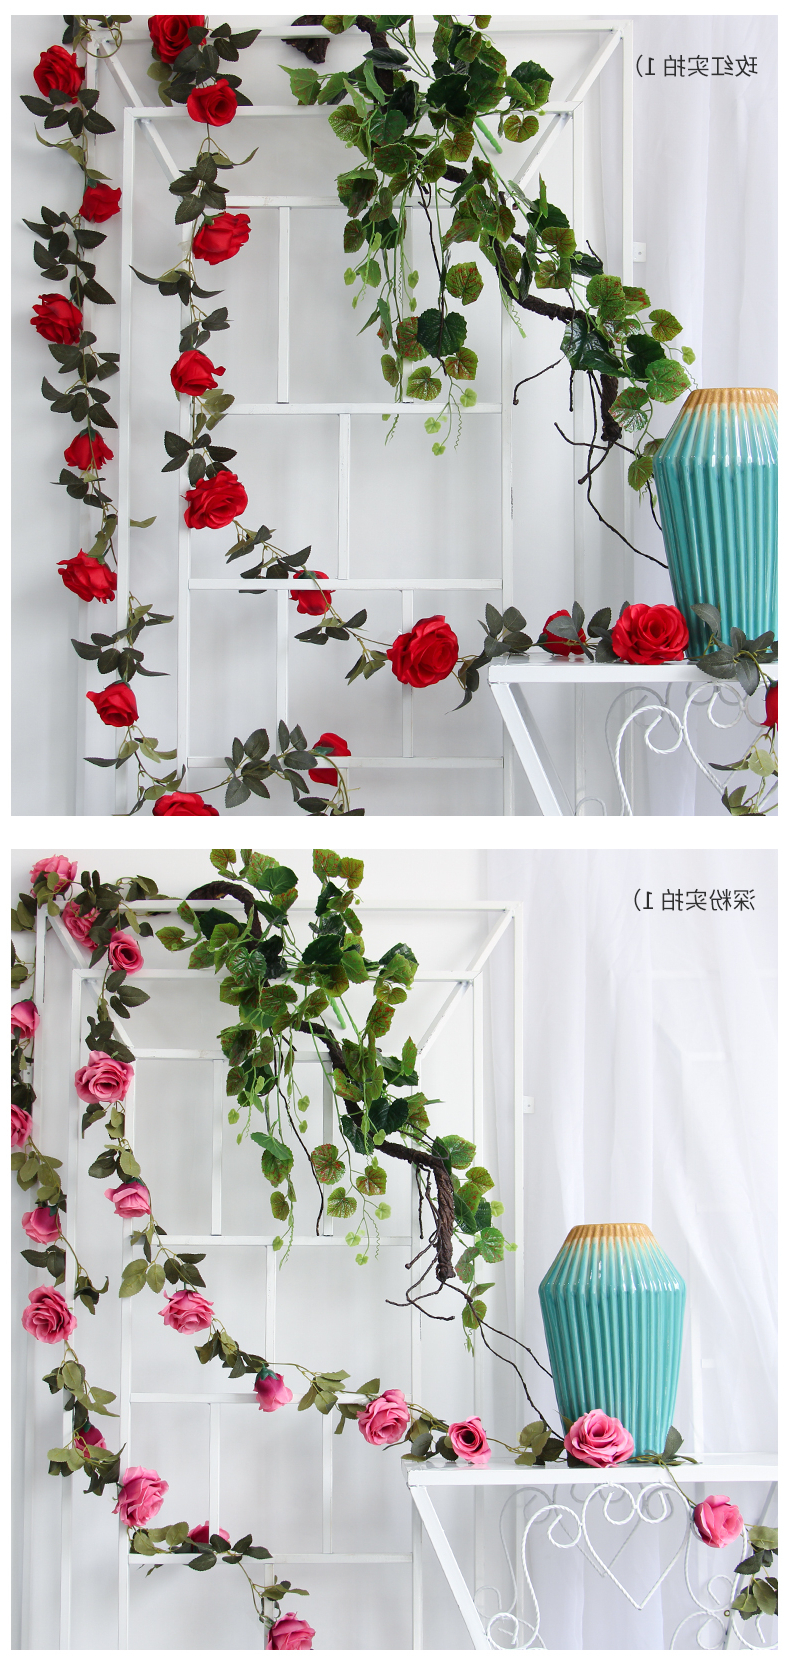 Simulation Rose Vine Flower Vine Flower Rattan Decorative Flower Vine Air With Regard To Popular Three Flowers On Vine Wall Decor (View 11 of 20)